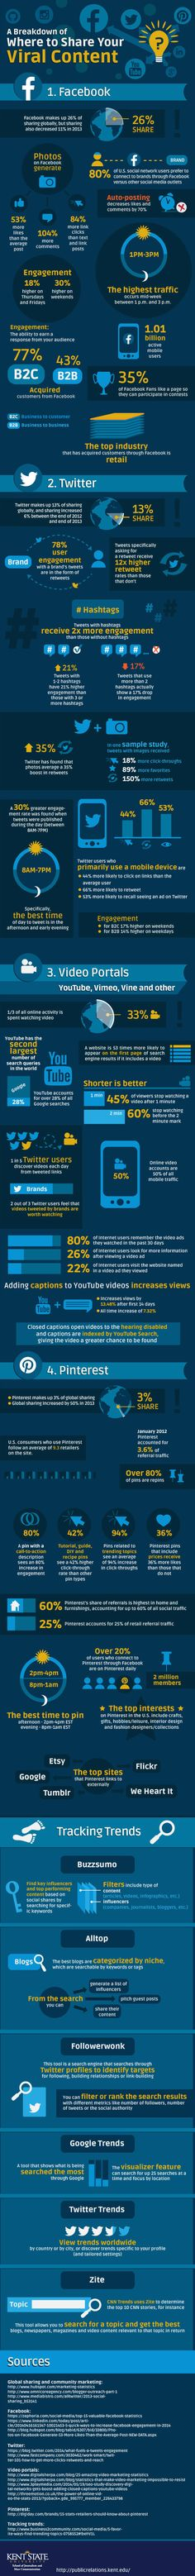 Where Should Small Businesses Share Their Viral Content [infographic]